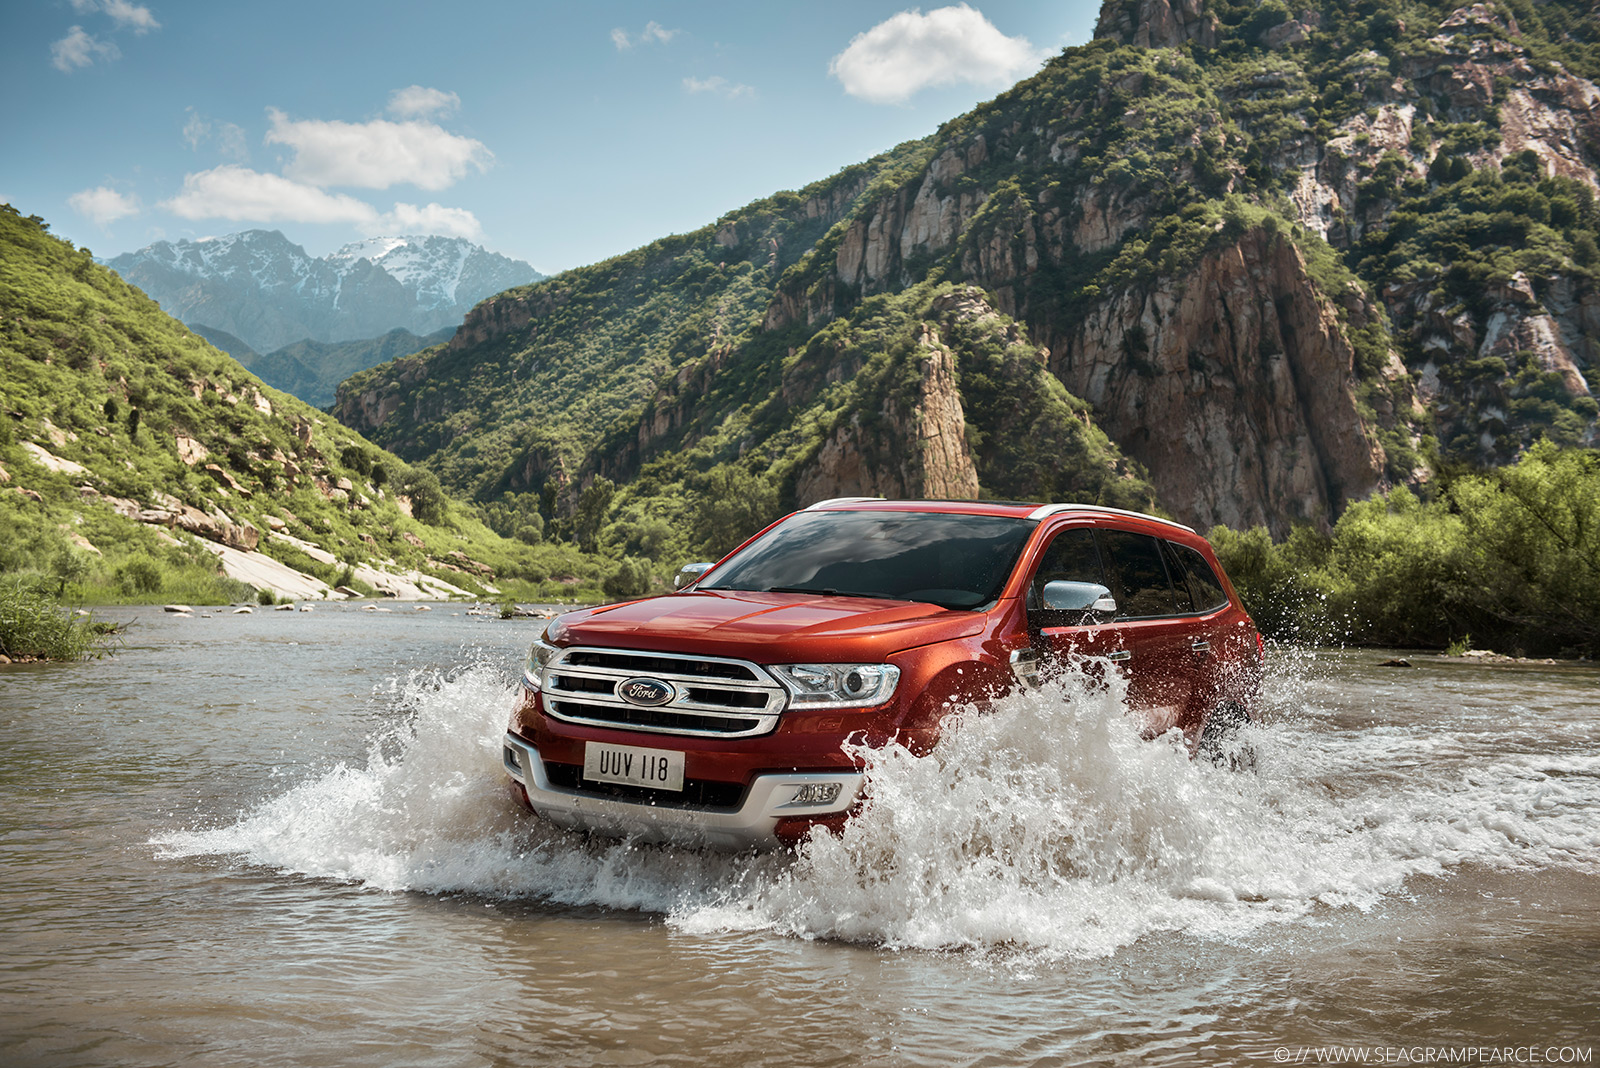 Ford | Everest Water Wading | Seagram Pearce Photography